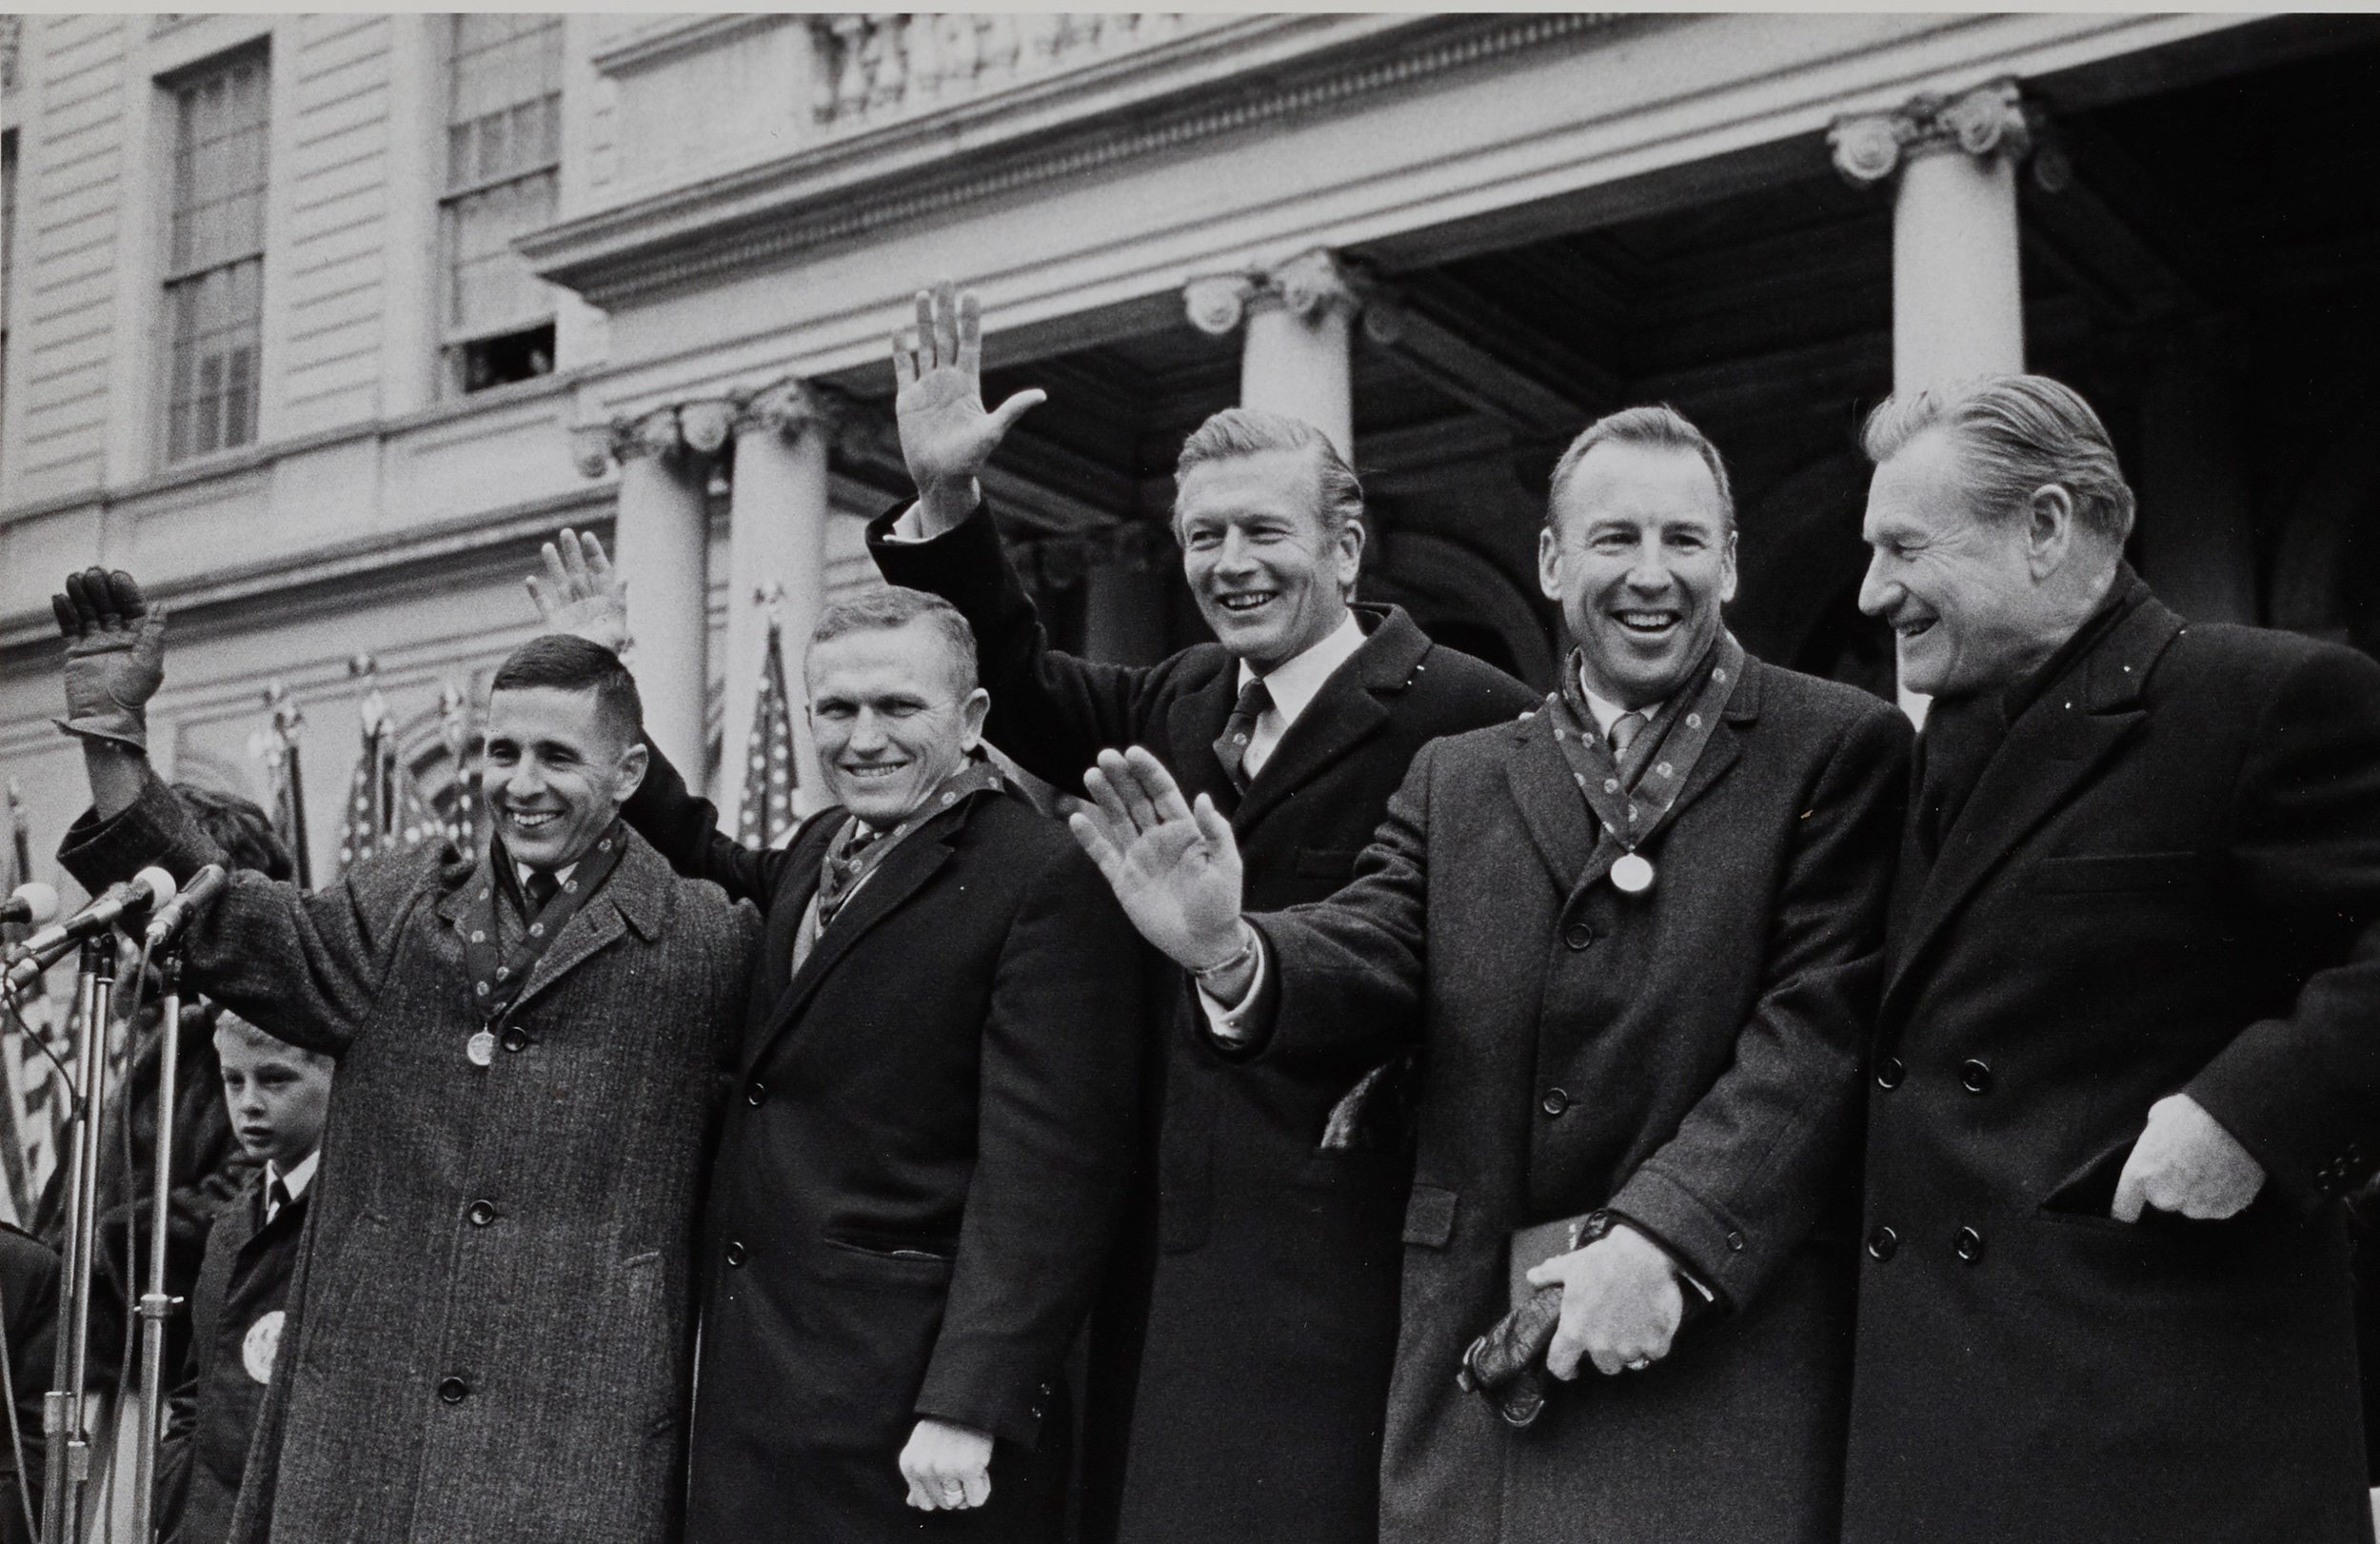 L-R: Lt. Col. Frank Borman, Lt. Col. William A. Anders, Mayor Lindsay, Capt. James A. Lovell, Jr., Governor Nelson Rockefeller on the steps of City Hall, January 10, 1969. Mayor Lindsay Collection, NYC Municipal Archives.